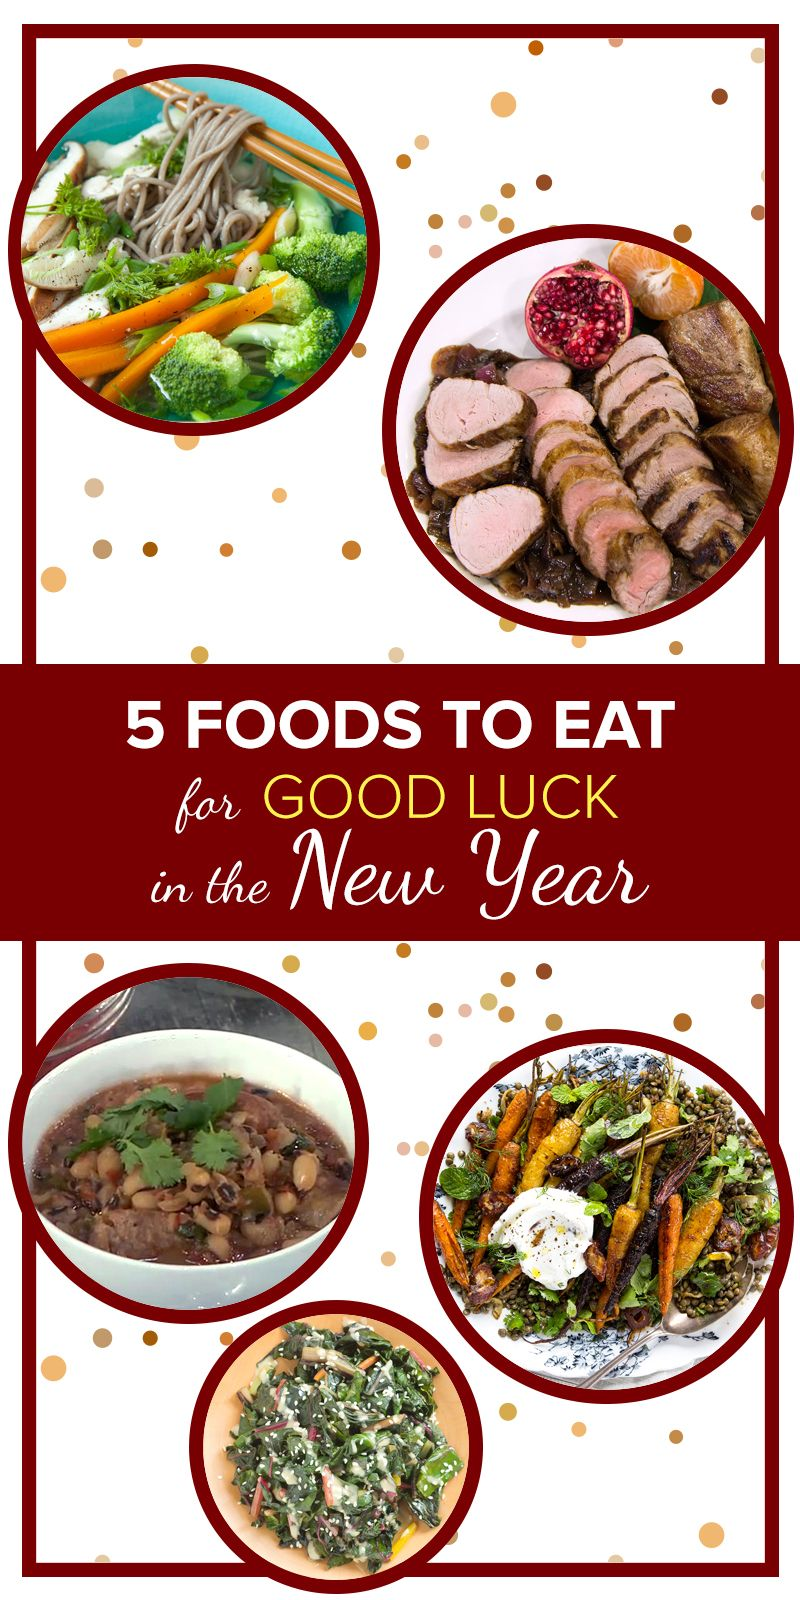 5 delicious foods that are eaten for good luck in the new